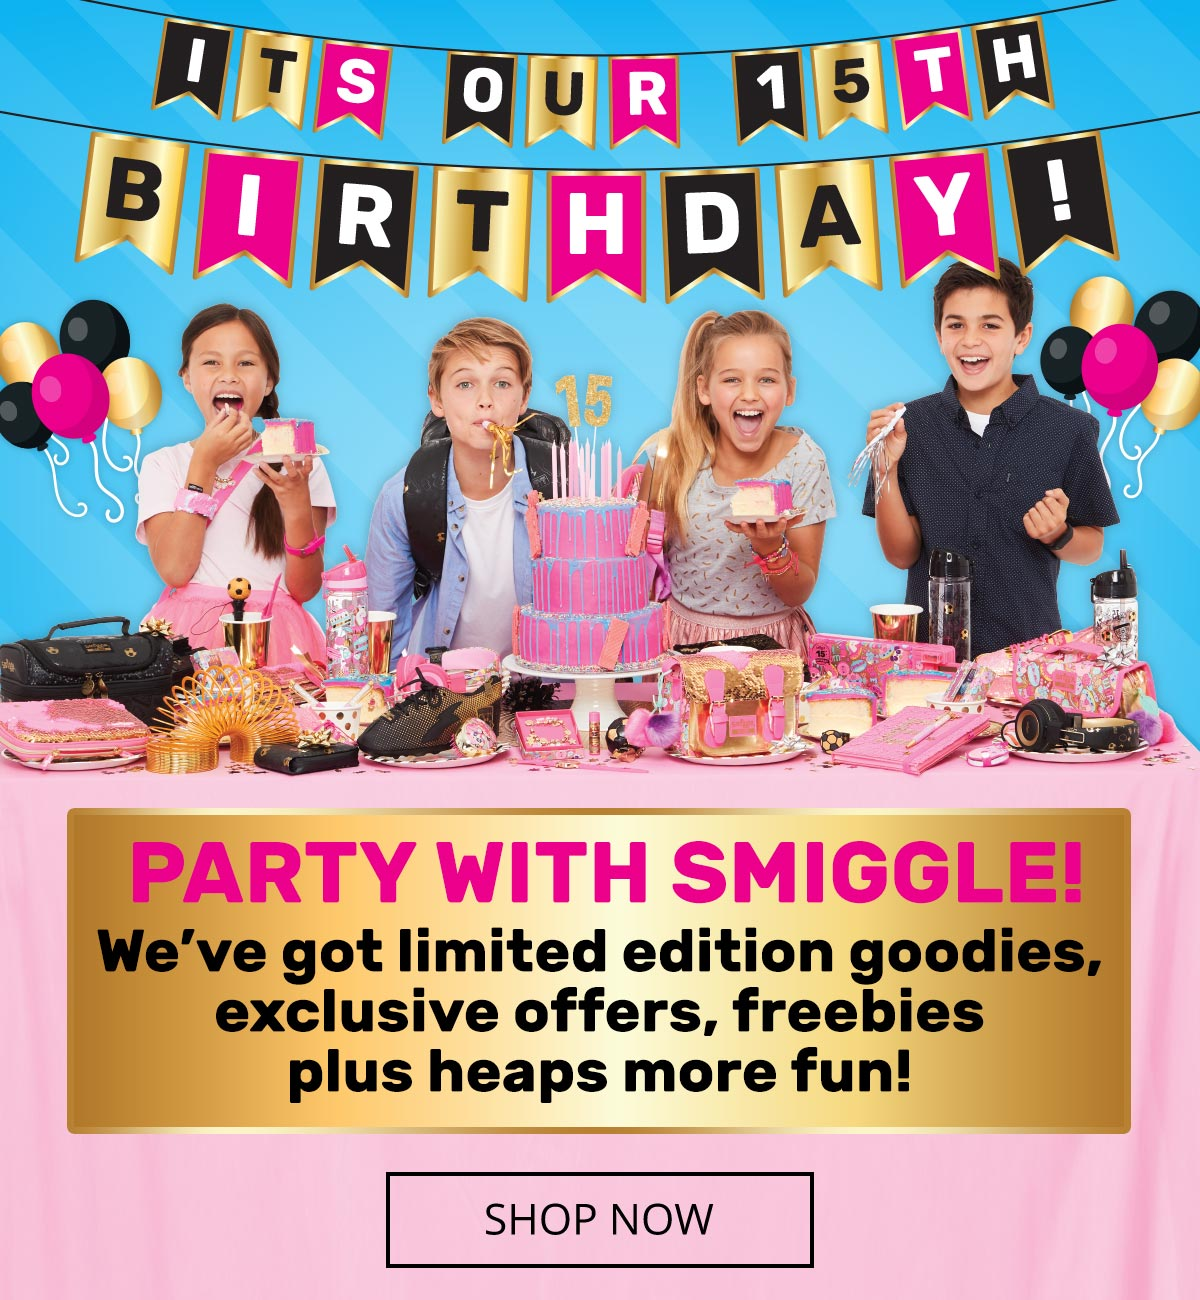 party with smiggle